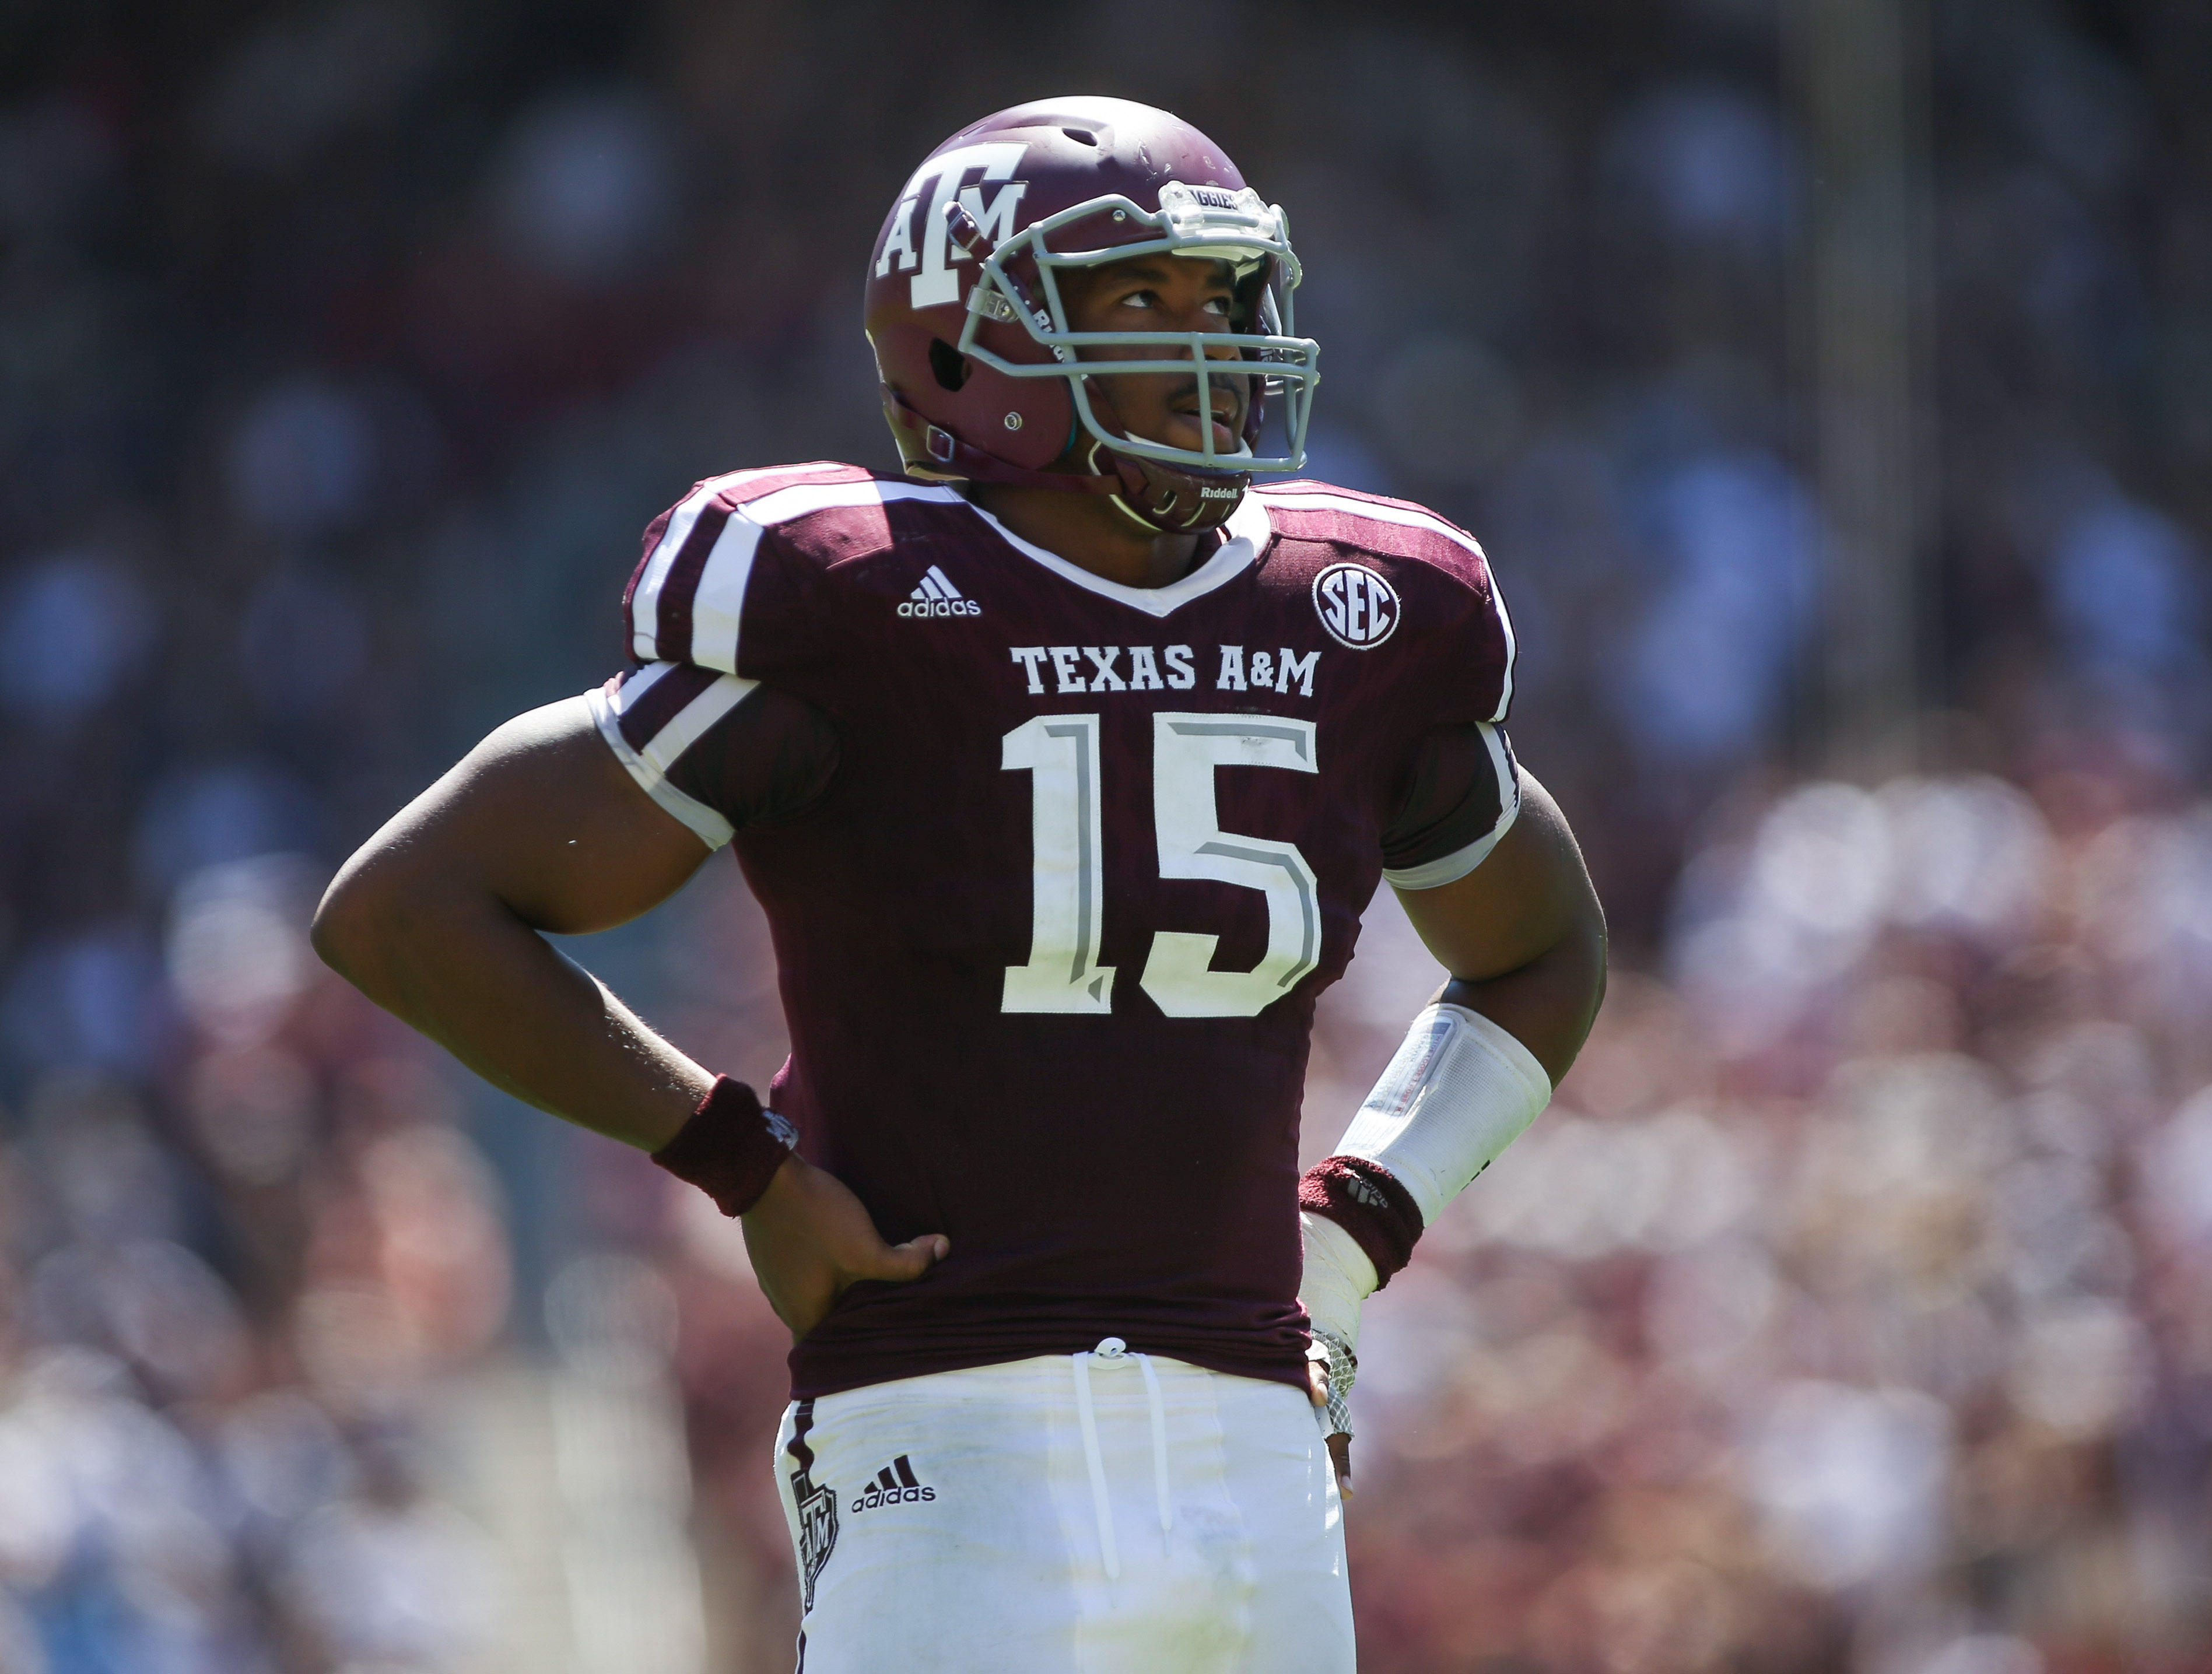 Sep 19, 2015; College Station, TX, USA; Texas A&M Aggies defensive lineman Myles Garrett (15) during the game against the Nevada Wolf Pack at Kyle Field. Mandatory Credit: Troy Taormina-USA TODAY Sports